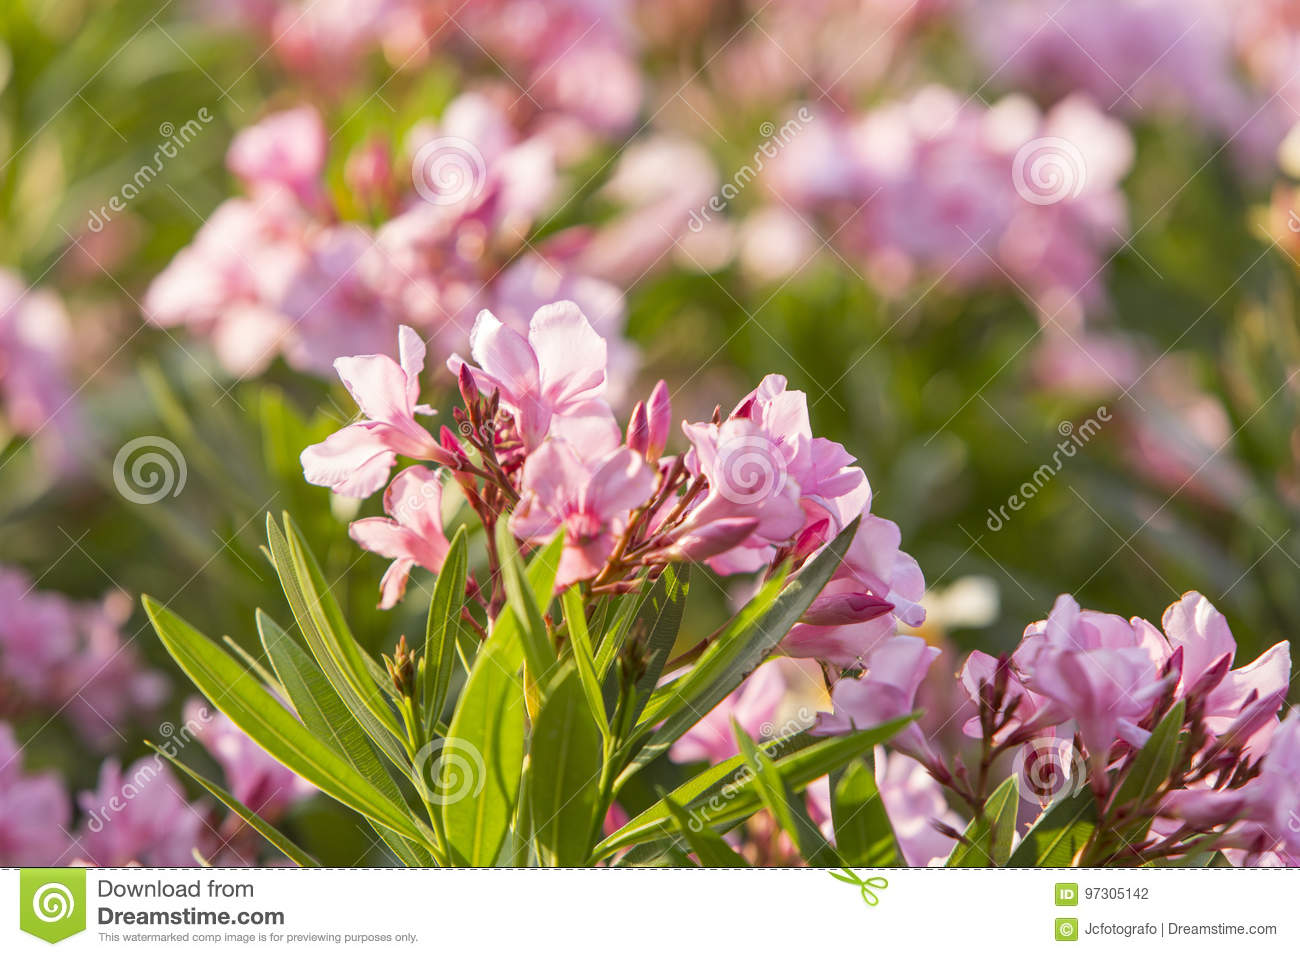 Beautiful natural flowers stock photo image of botany 97305142 download beautiful natural flowers stock photo image of botany 97305142 izmirmasajfo